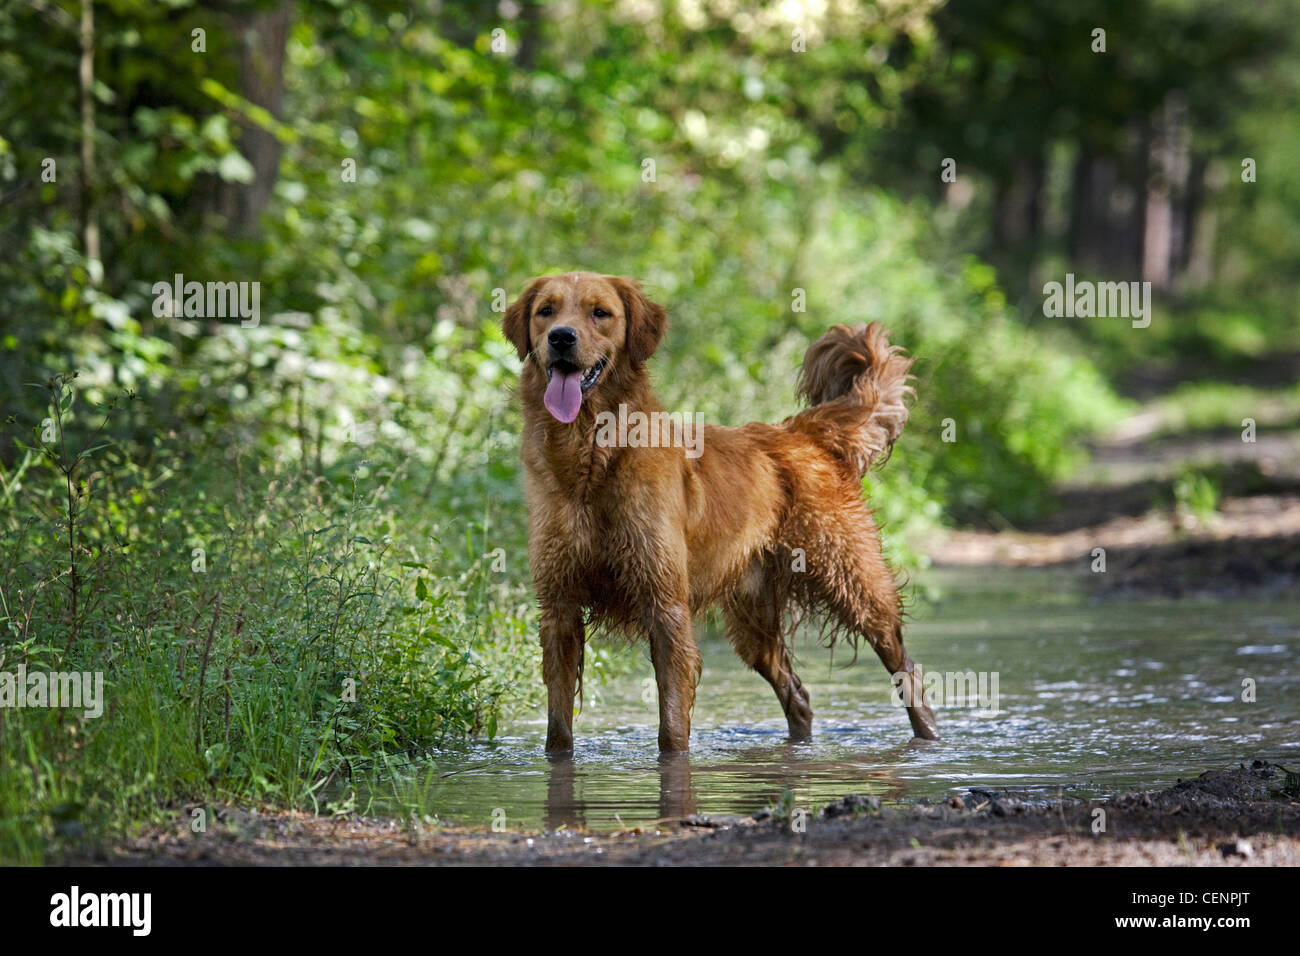 Golden retriever dog with wet fur standing in muddy puddle on forest track, Belgium - Stock Image